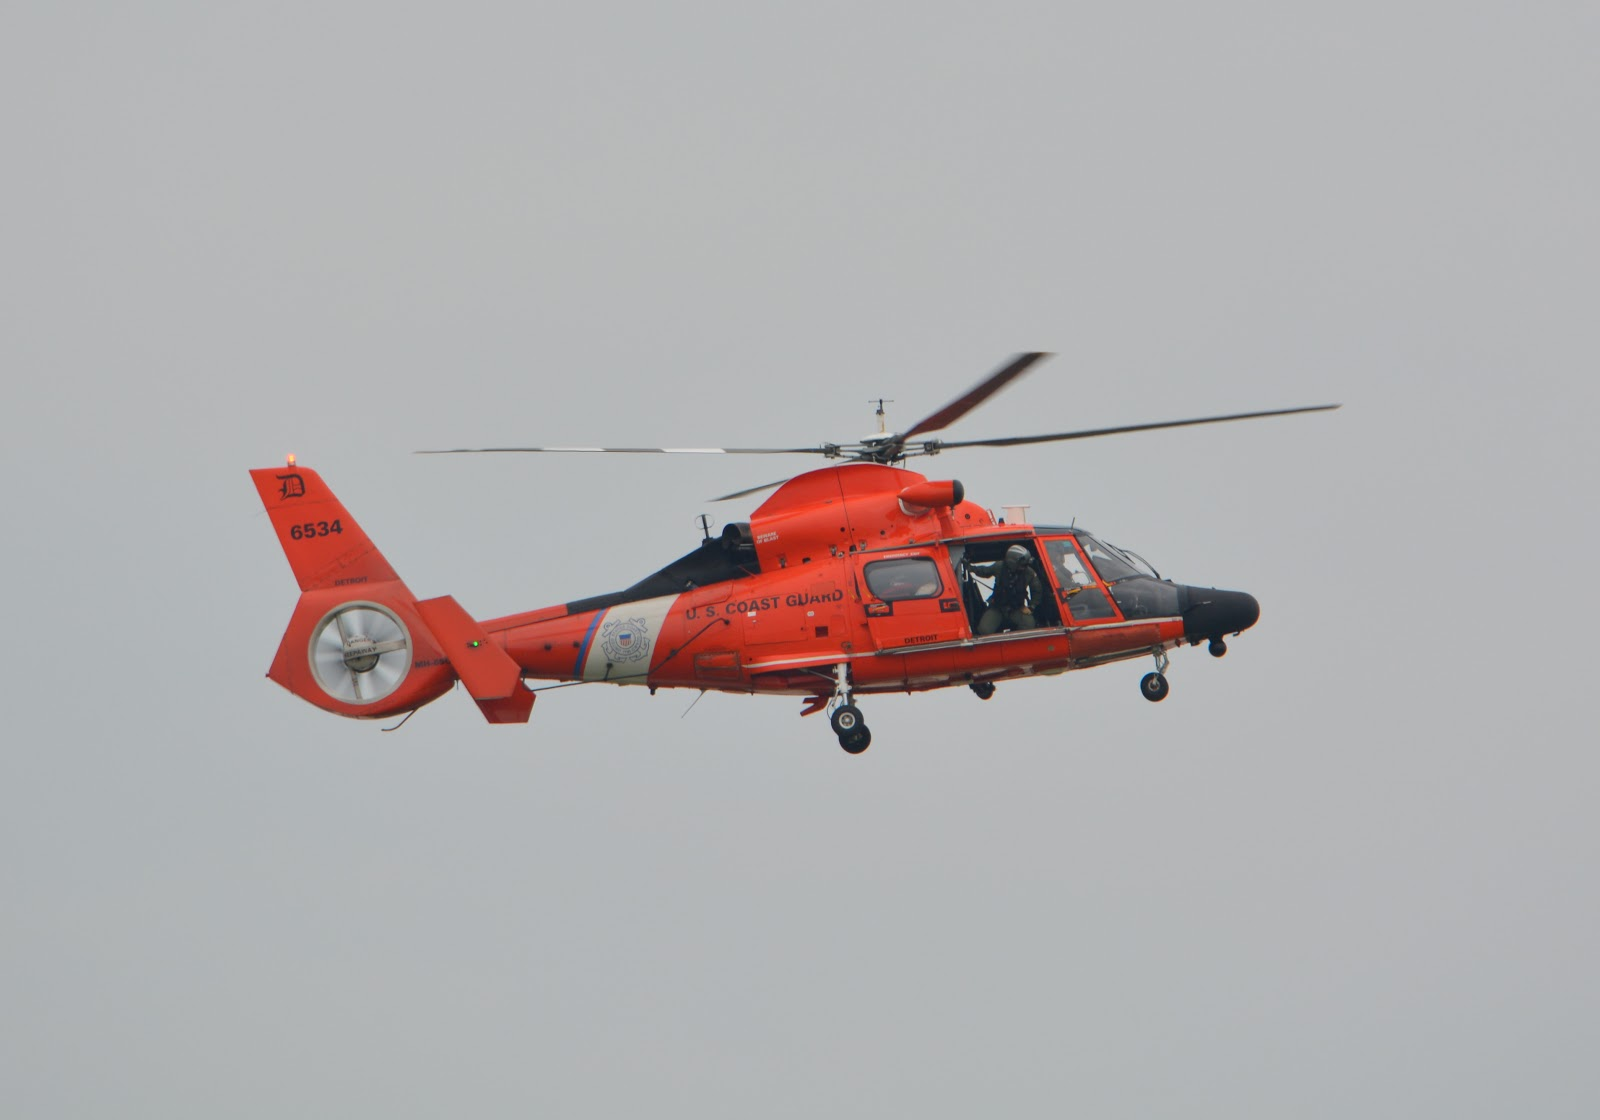 cozy birdhouse | dayton air show 2014, coast guard helicopter